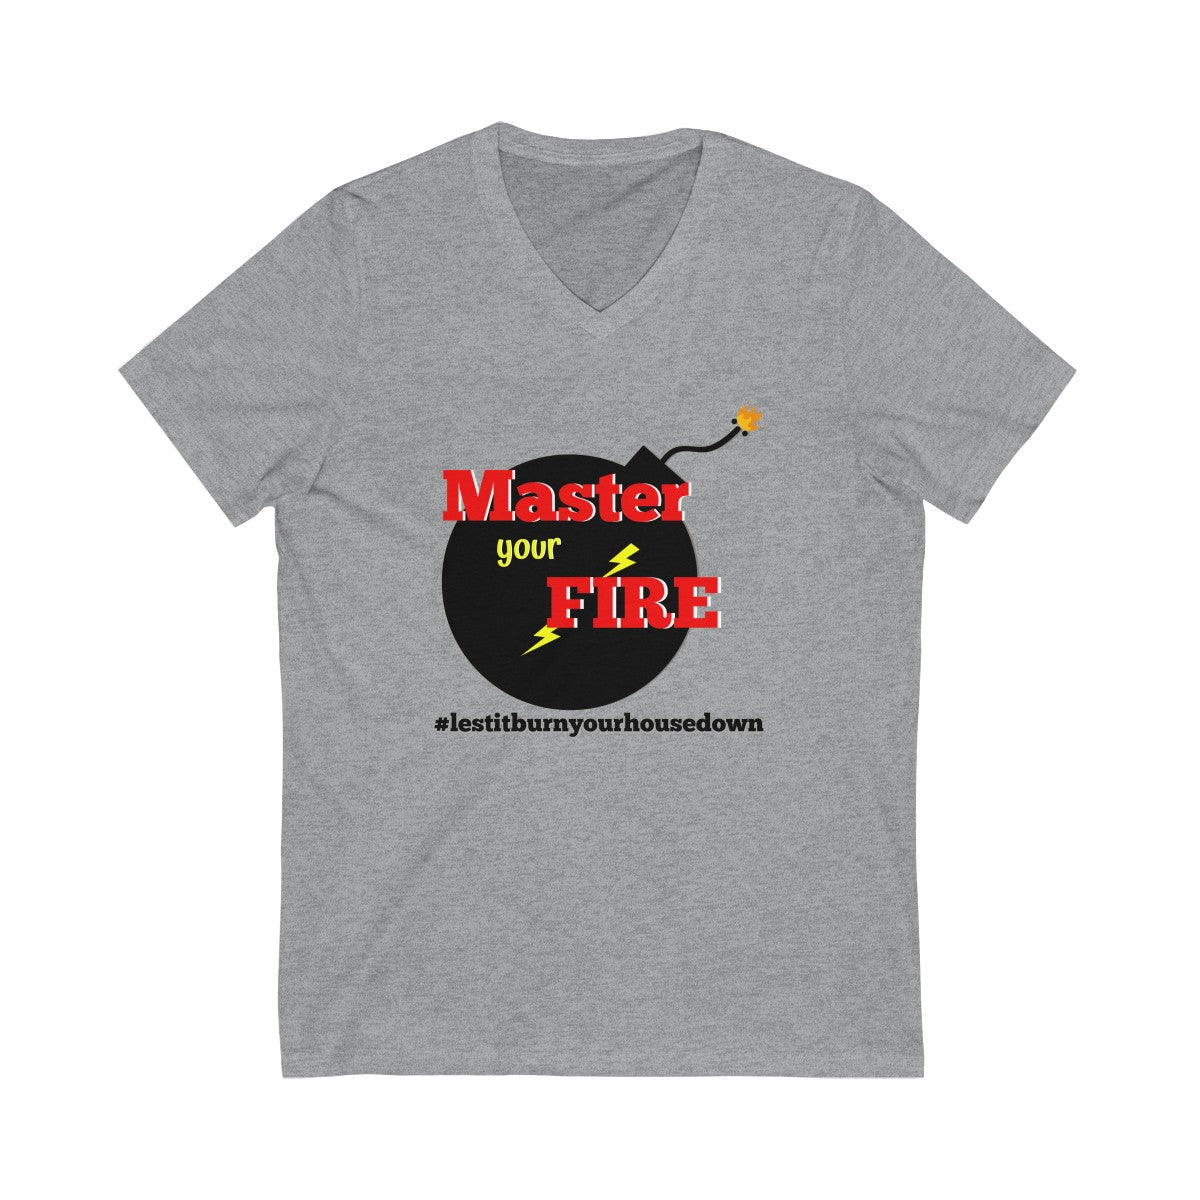 Unisex Jersey Short Sleeve V-Neck Tee - Master your Fire